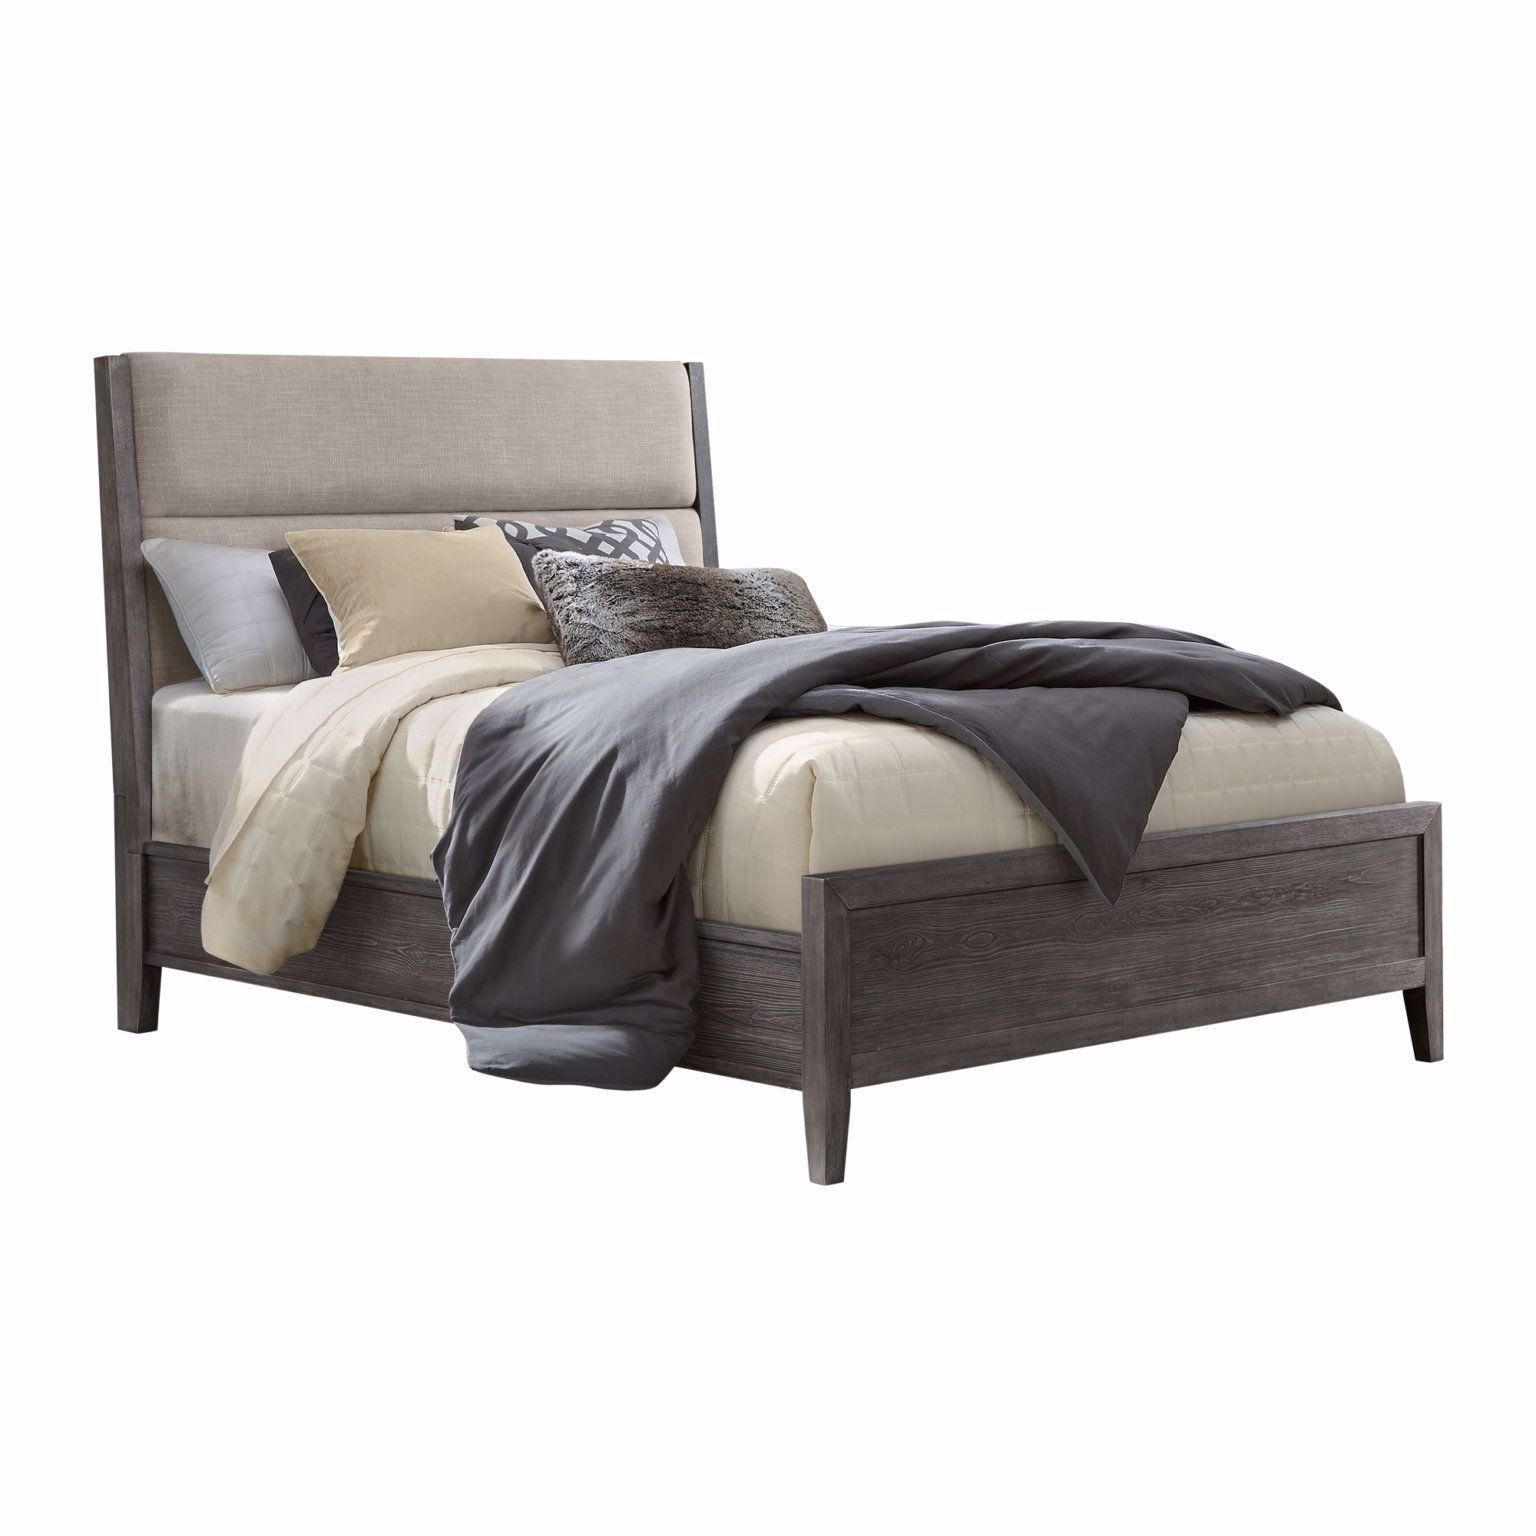 Picture of Portia Queen Bed